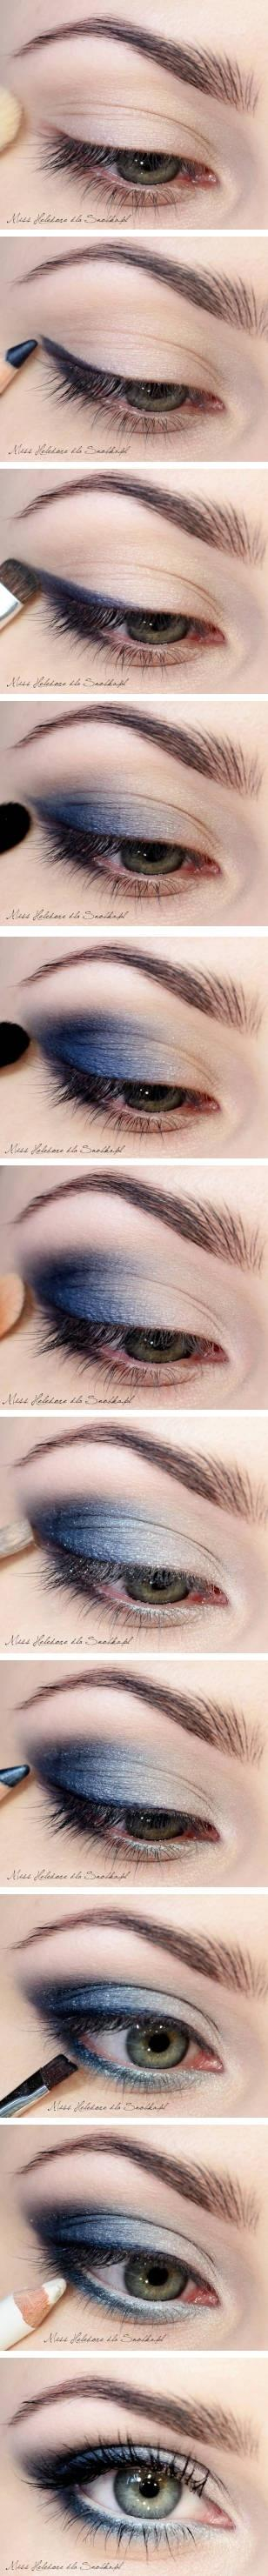 Perfect the perfect #smokyeye with the new blue #eyeshadow trend!